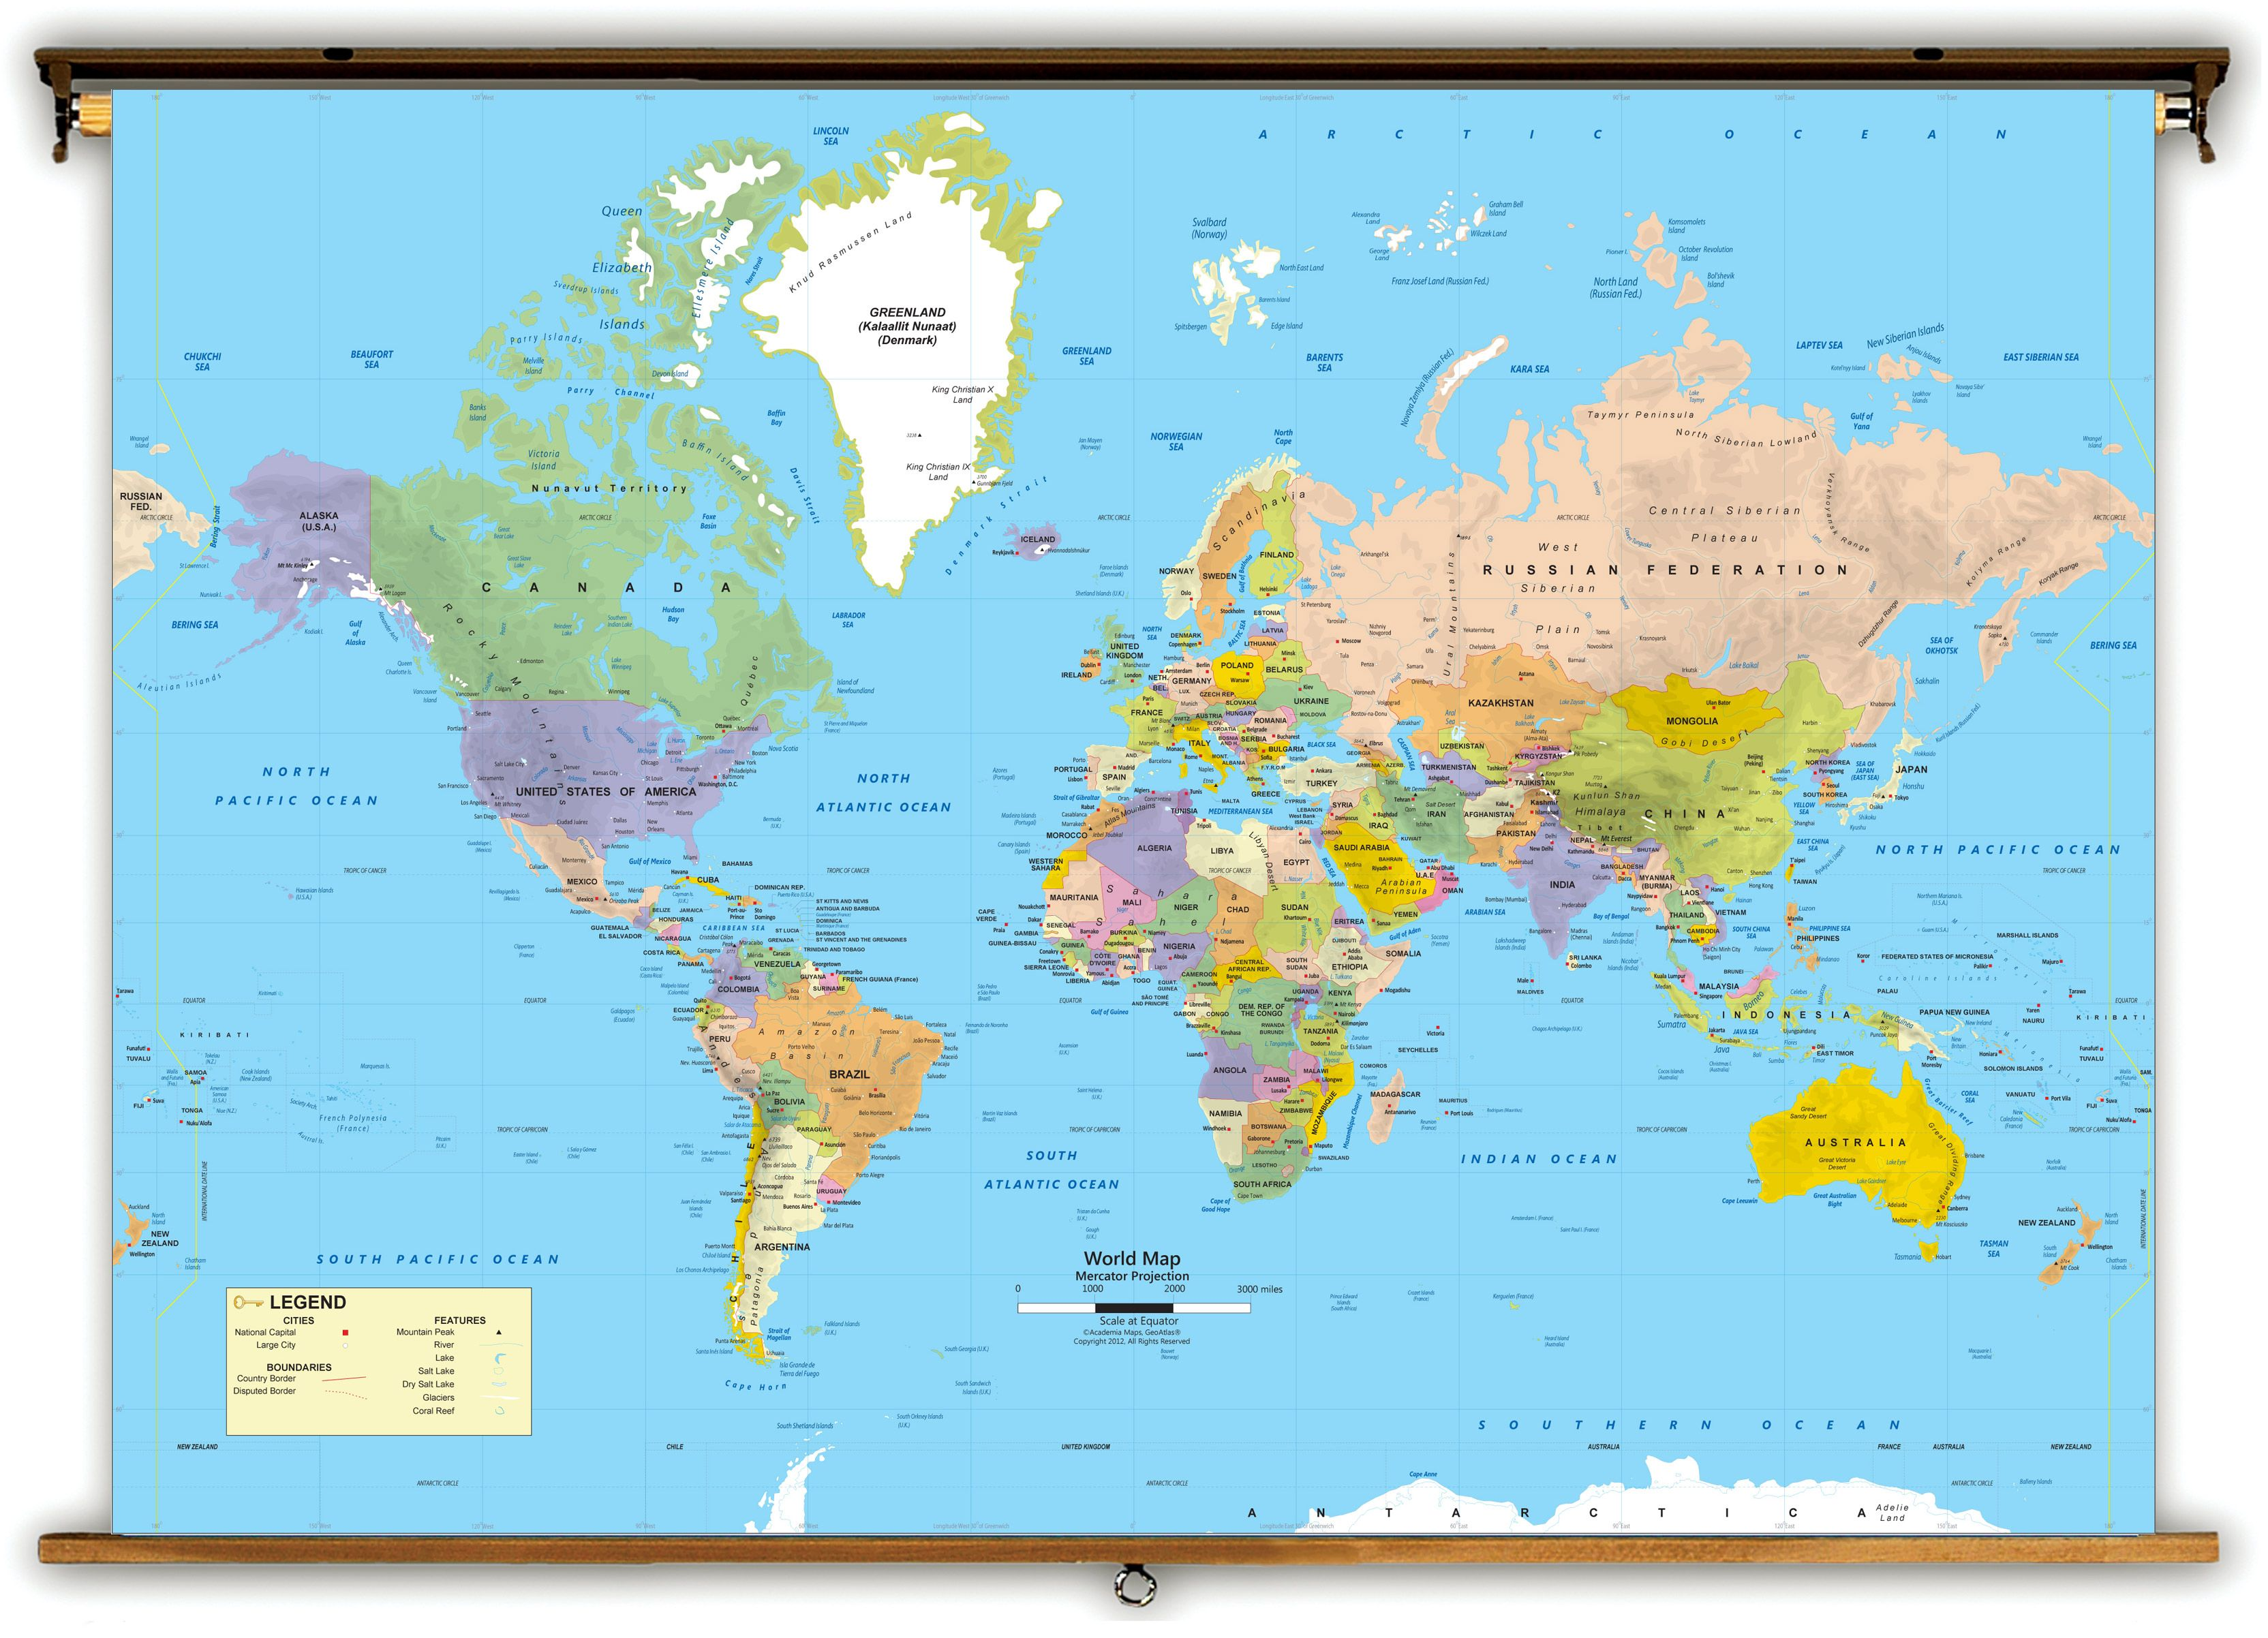 17 Best images about Hunt for a Good World Map on Pinterest ...